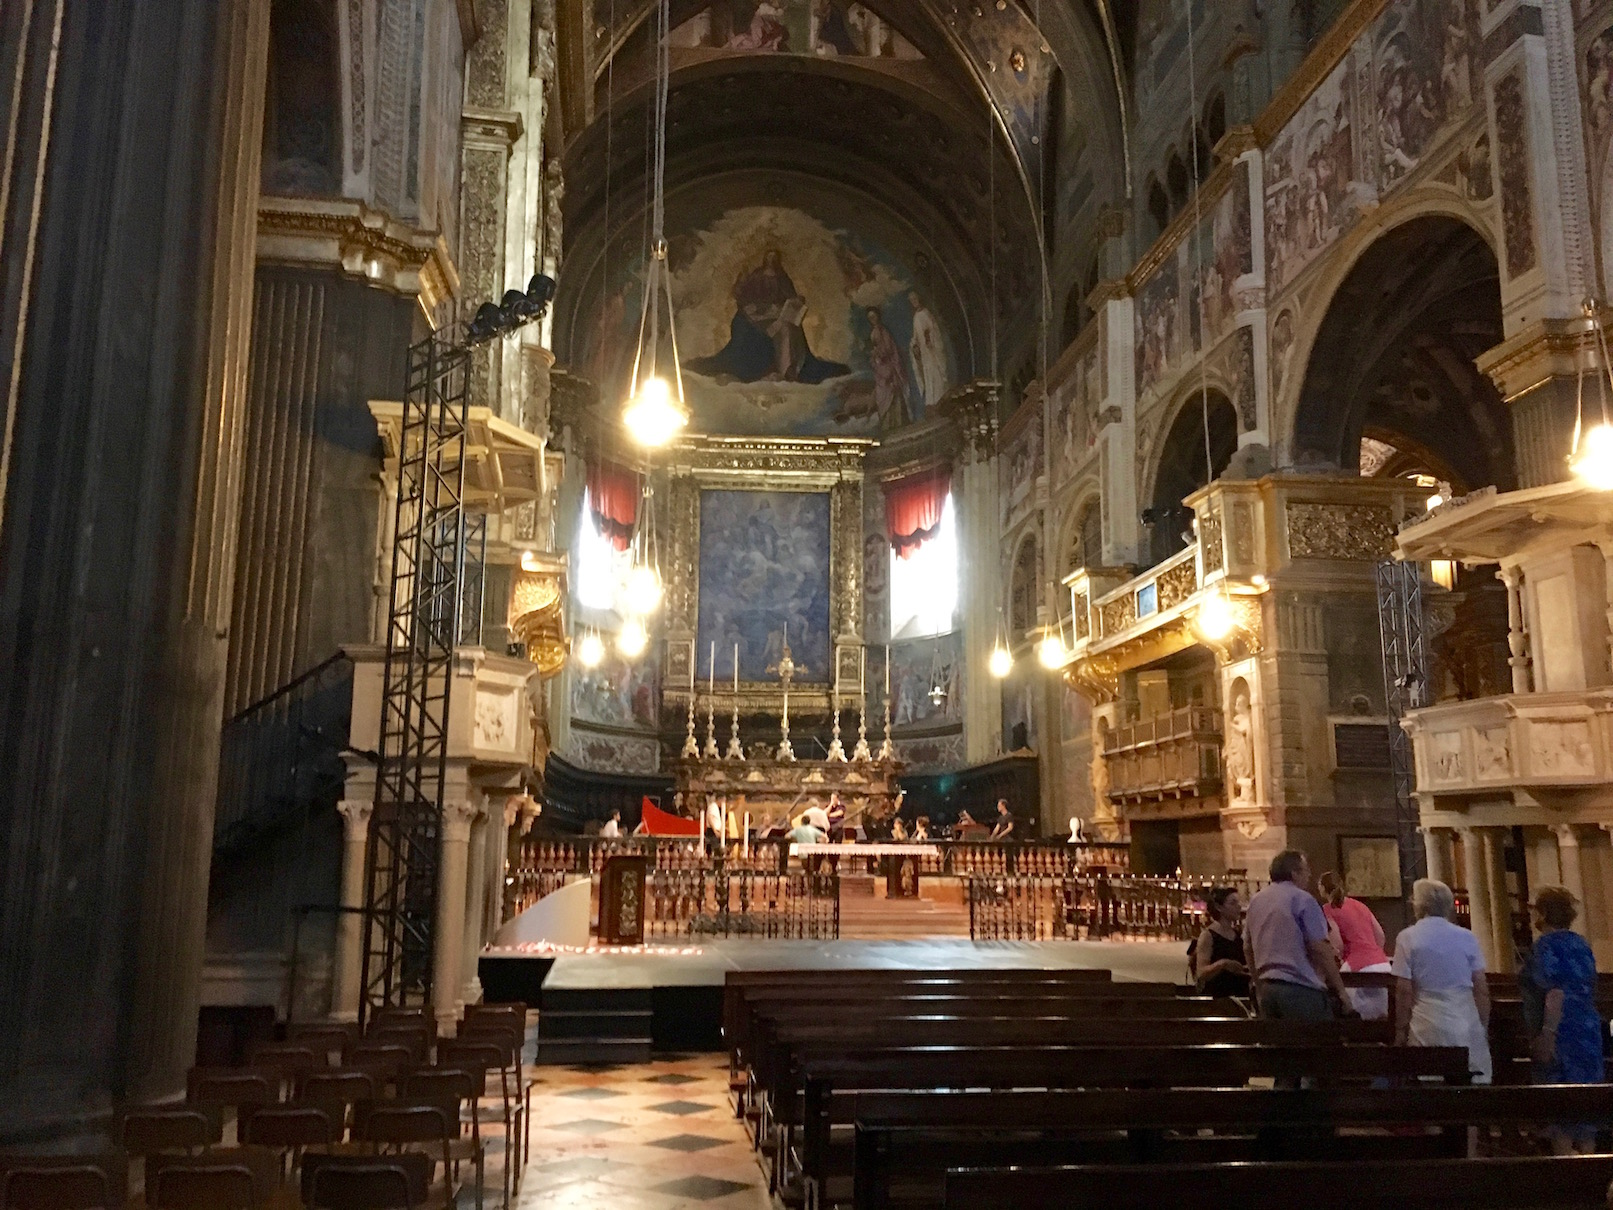 A magical moment in the Cremona cathedral where we heard a rehearsal of Monteverdi's music taking place.